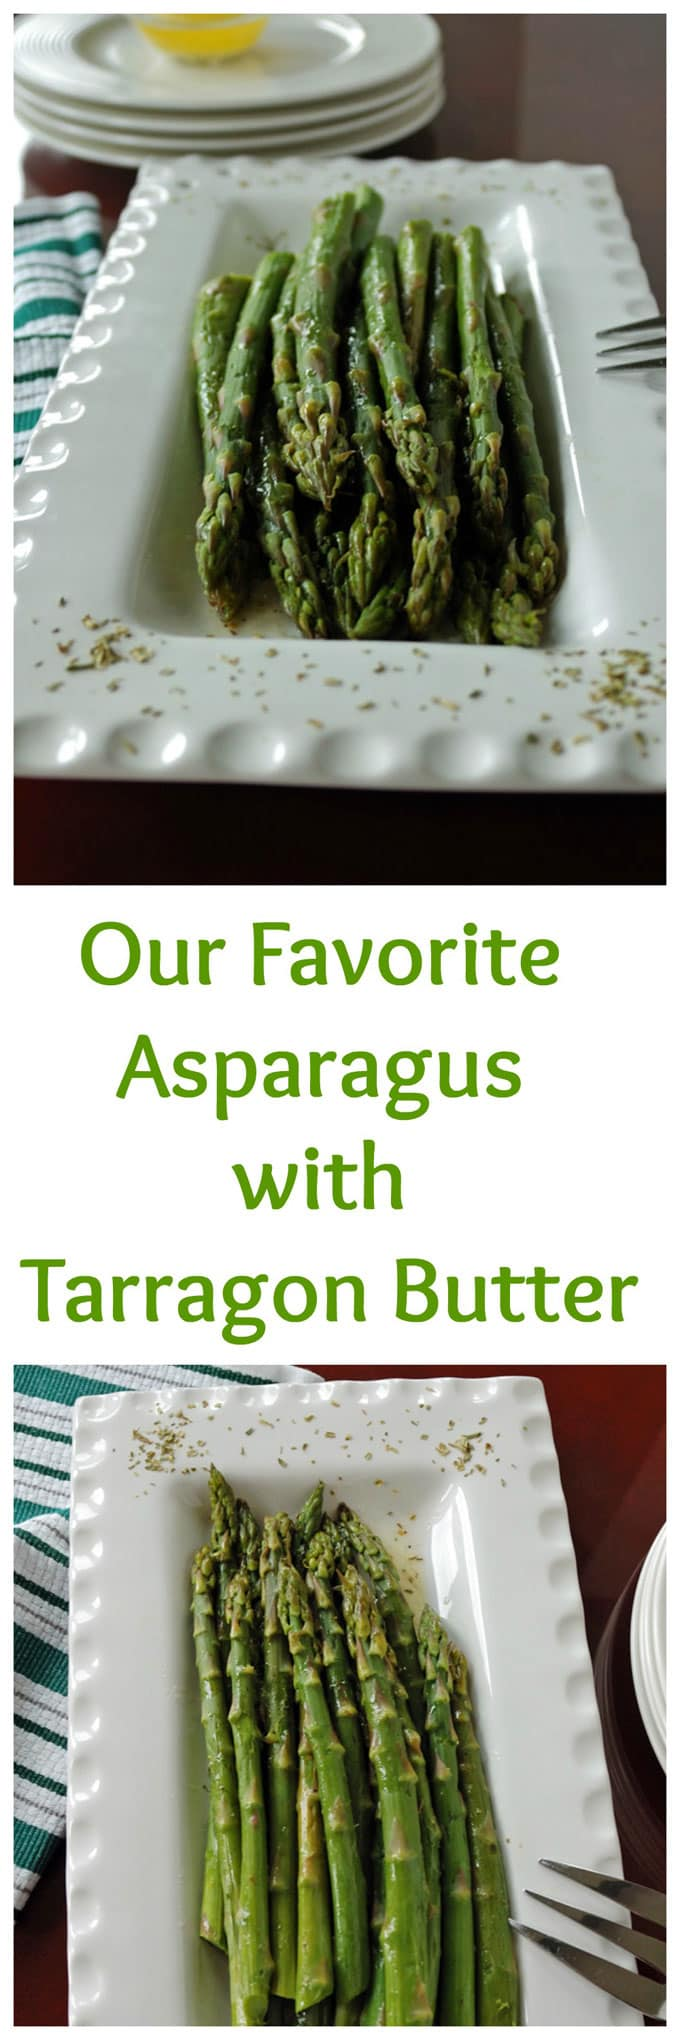 Our Favorite Asparagus with Tarragon Butter is simple, delicious and always impressive!